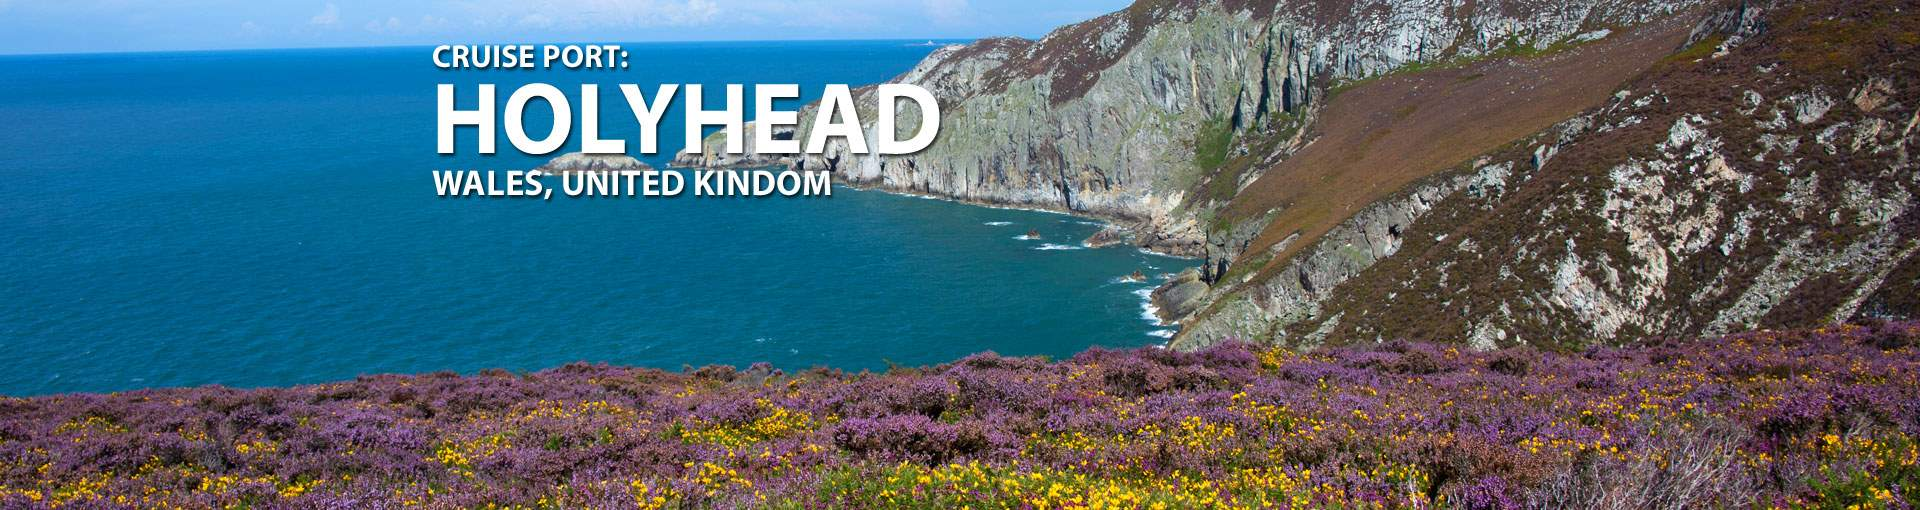 Cruises to Holyhead, Wales